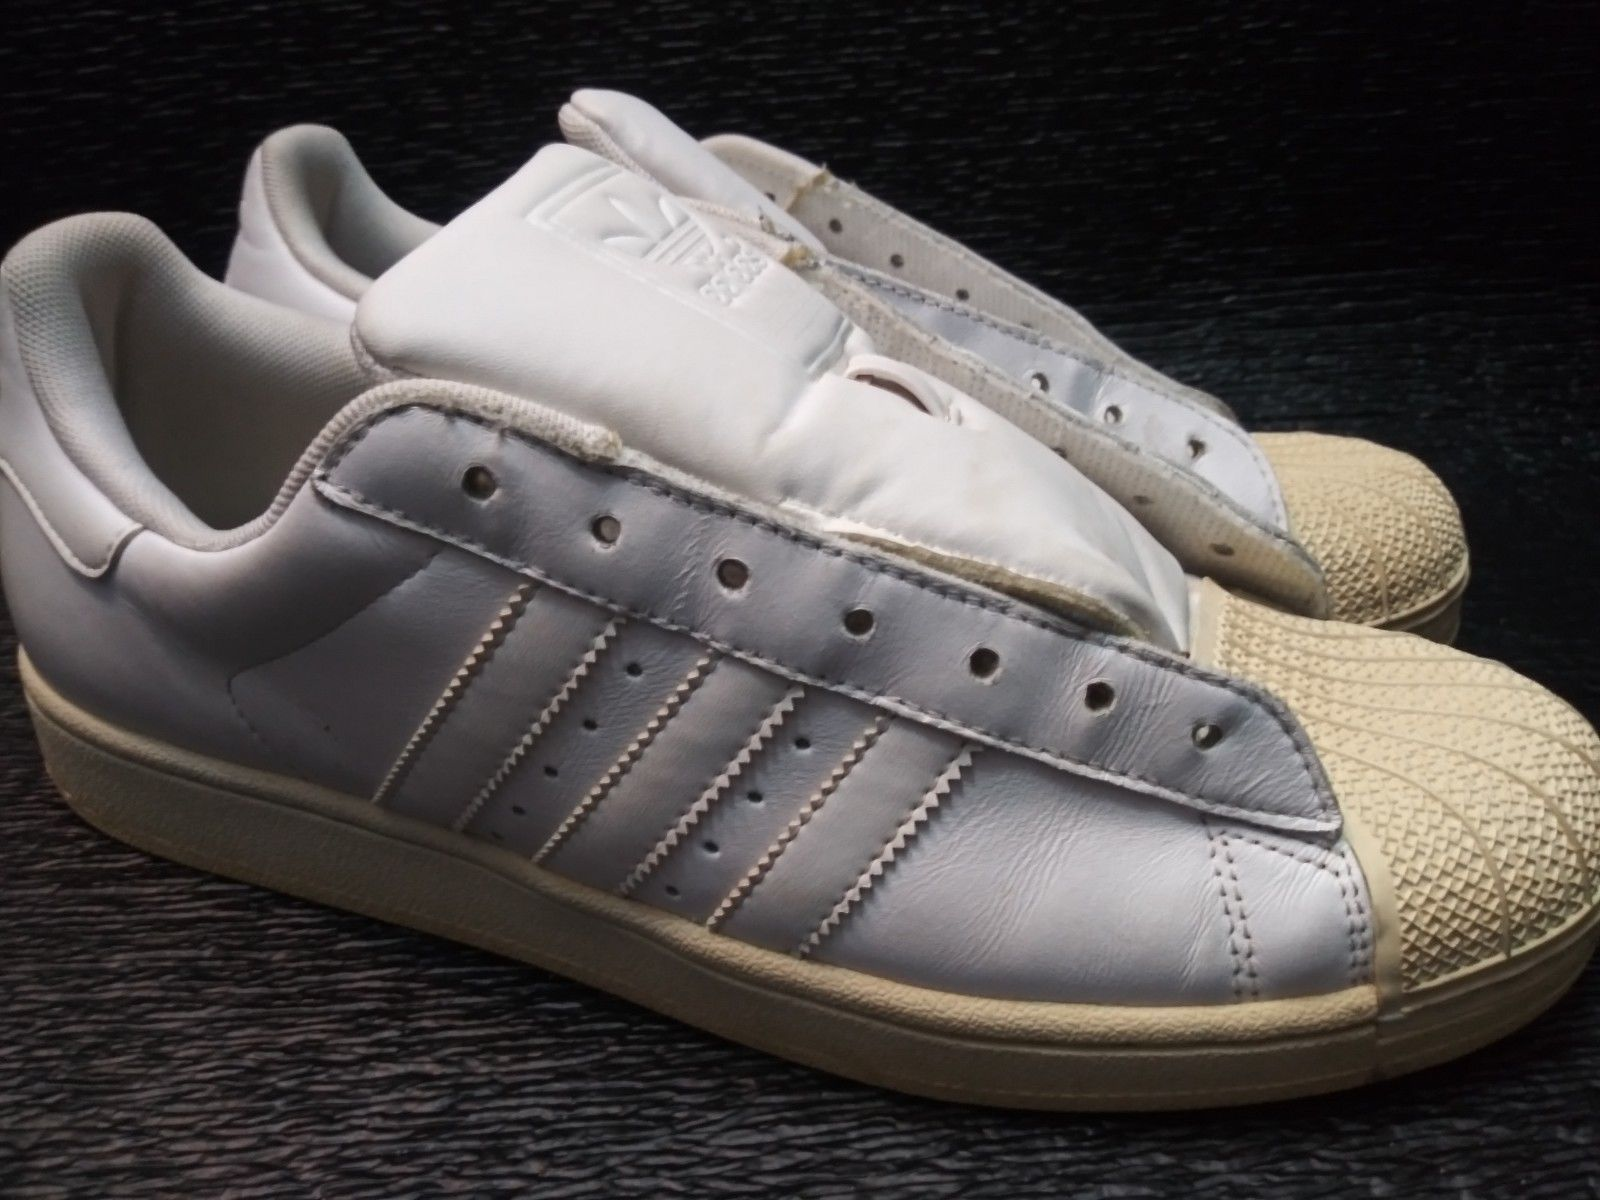 7d47529df Adidas Superstar S Toe Shoes Size 10 And 48 Similar Items